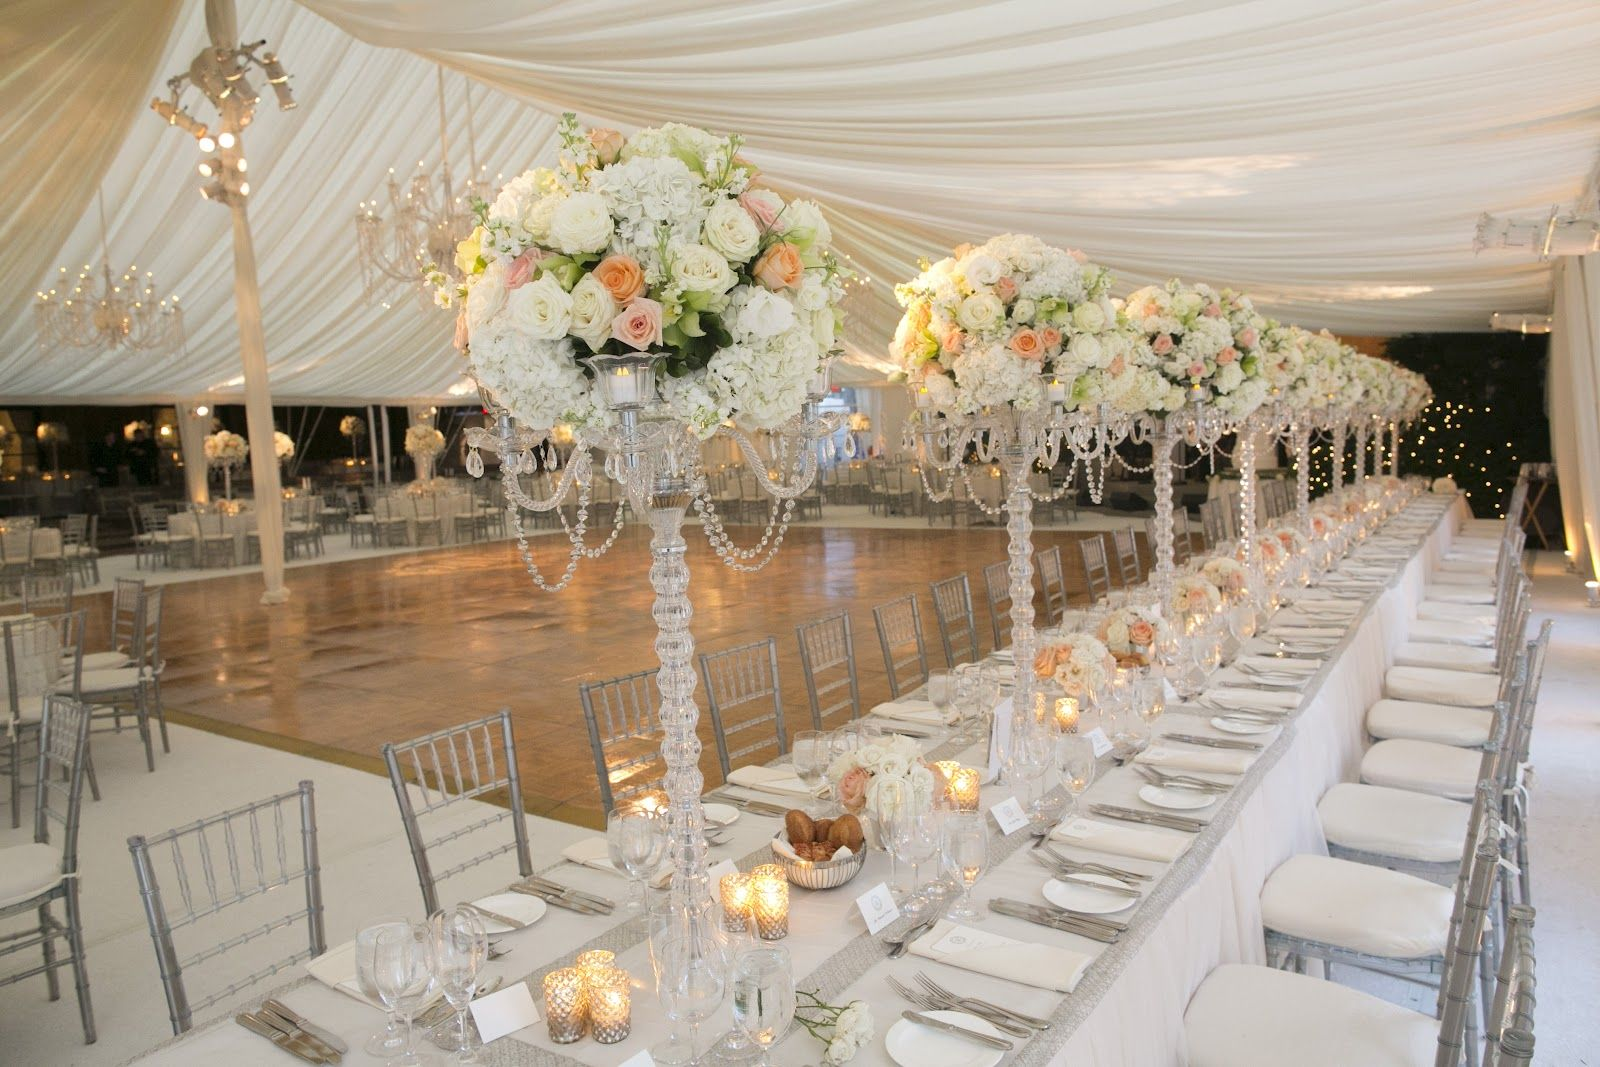 White And Silver Wedding Theme: Images For > White And Silver Wedding Themes